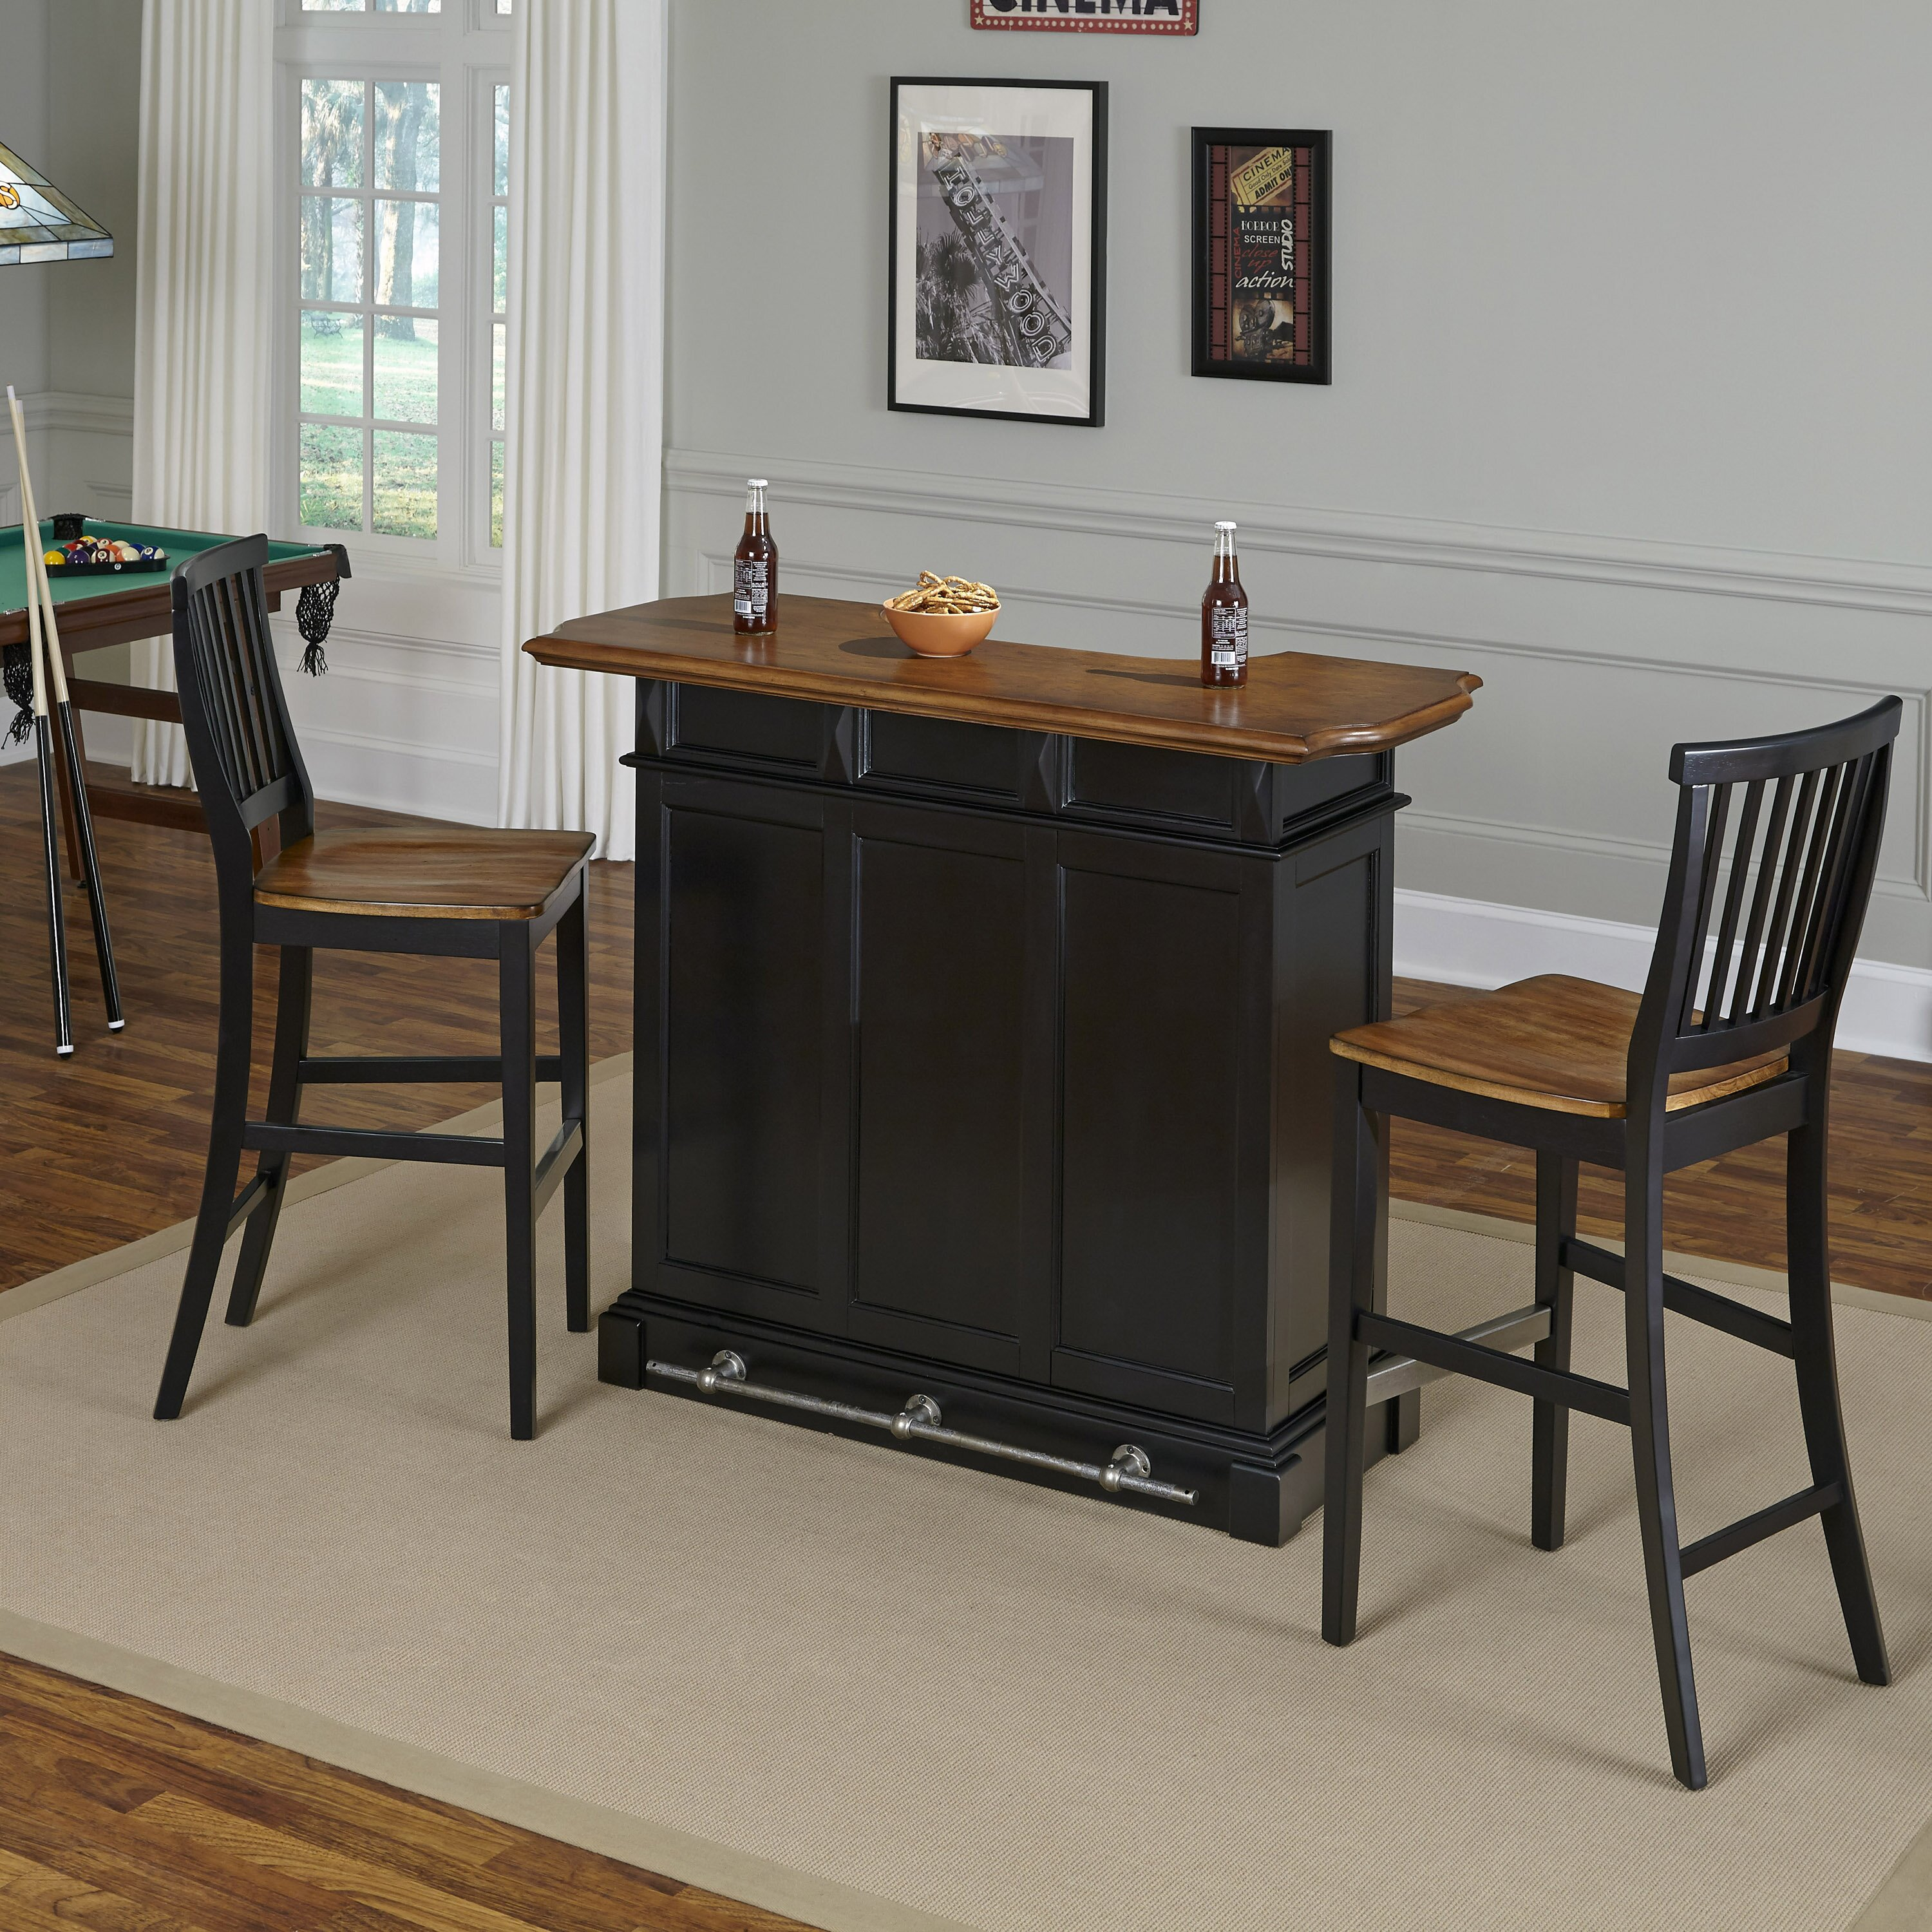 home styles americana home bar set reviews wayfair. Black Bedroom Furniture Sets. Home Design Ideas